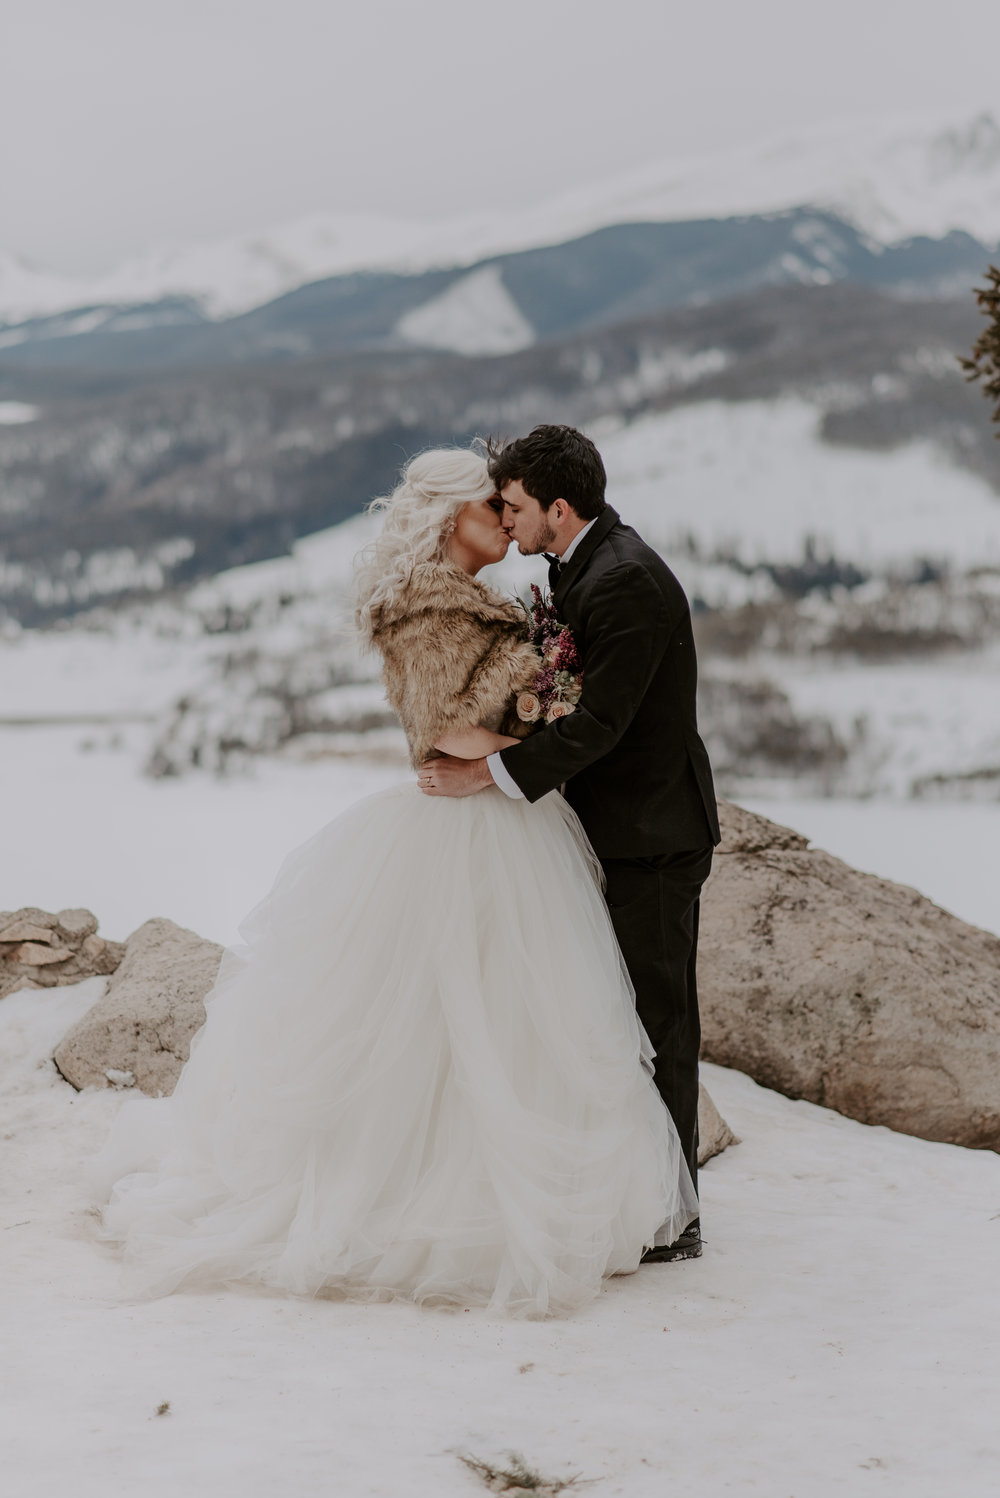 Destination adventure elopement at Sapphire Point in Colorado.